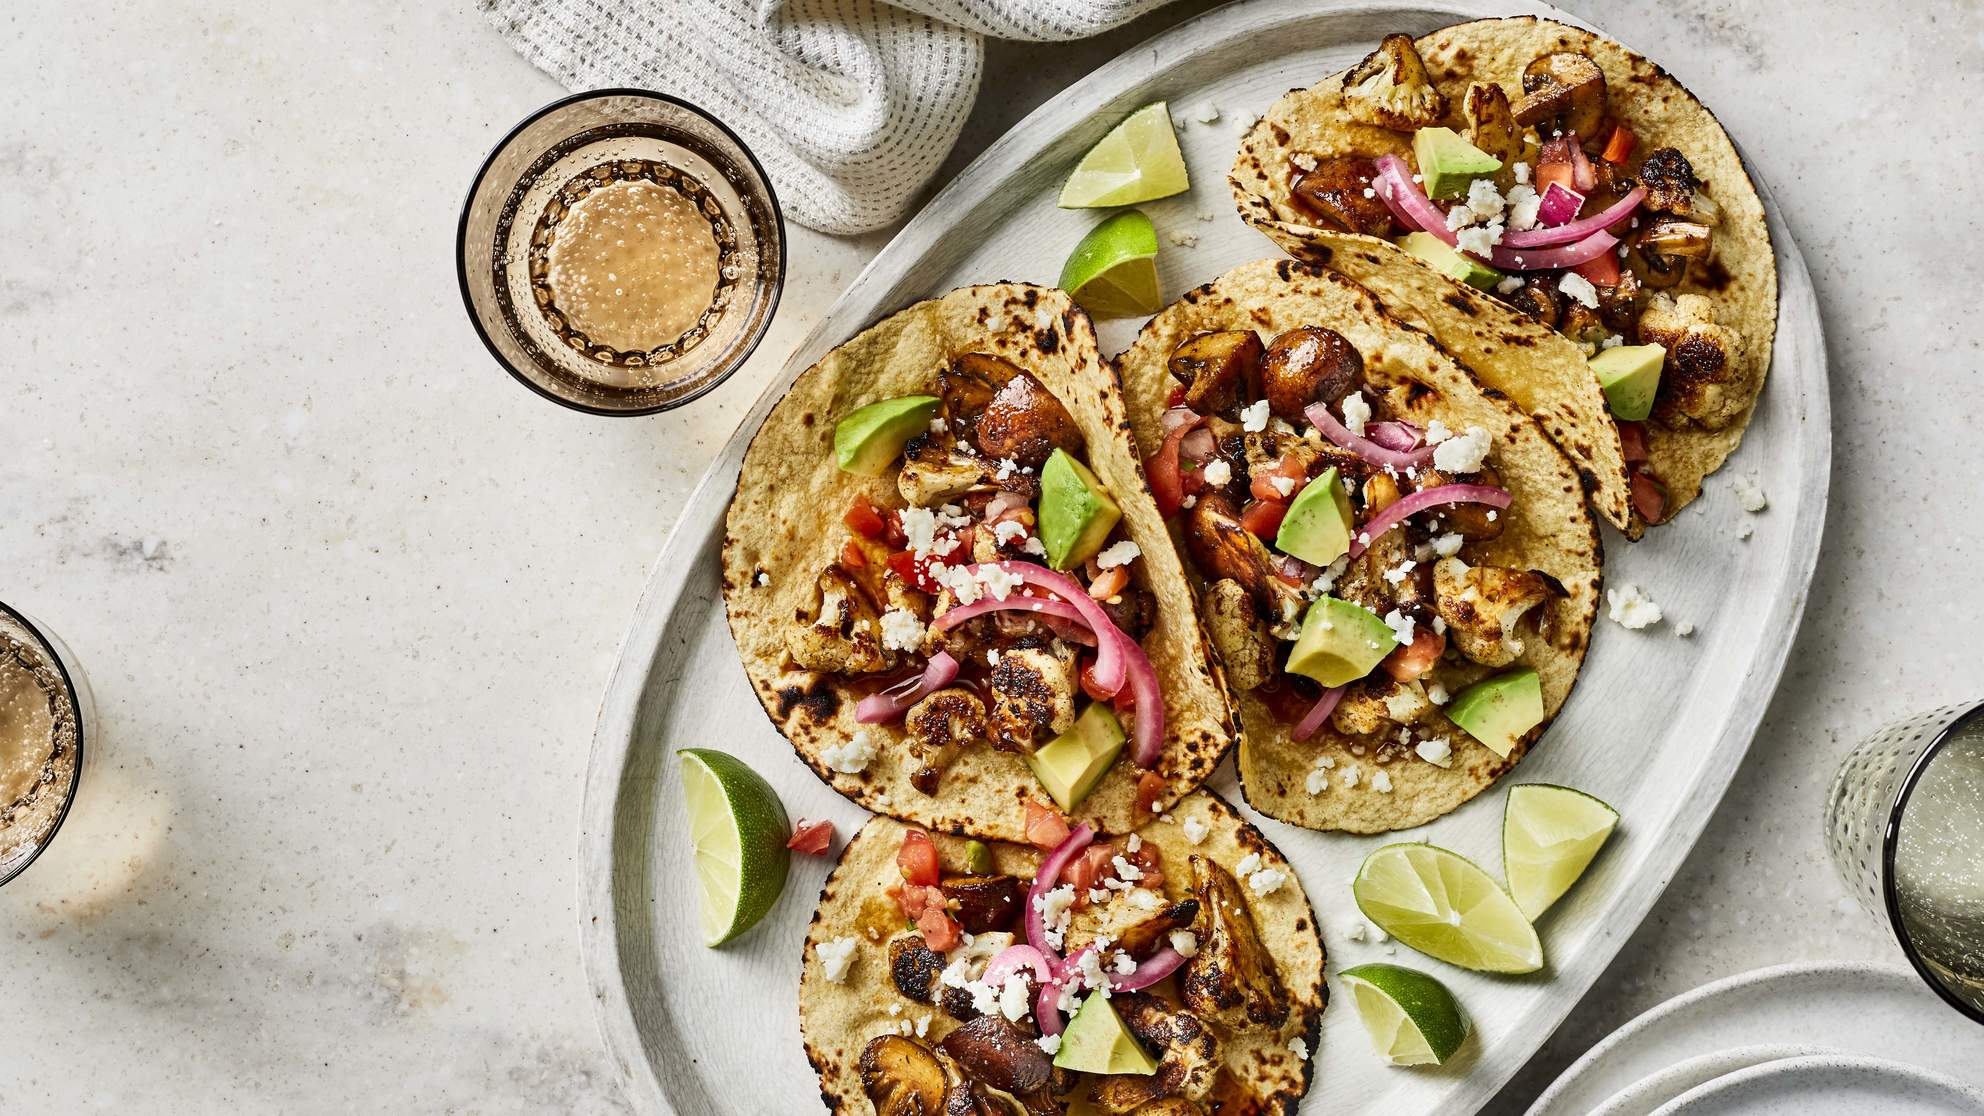 mushroom-tacos-cauliflower-recipes-health-mag-january-feb-2020